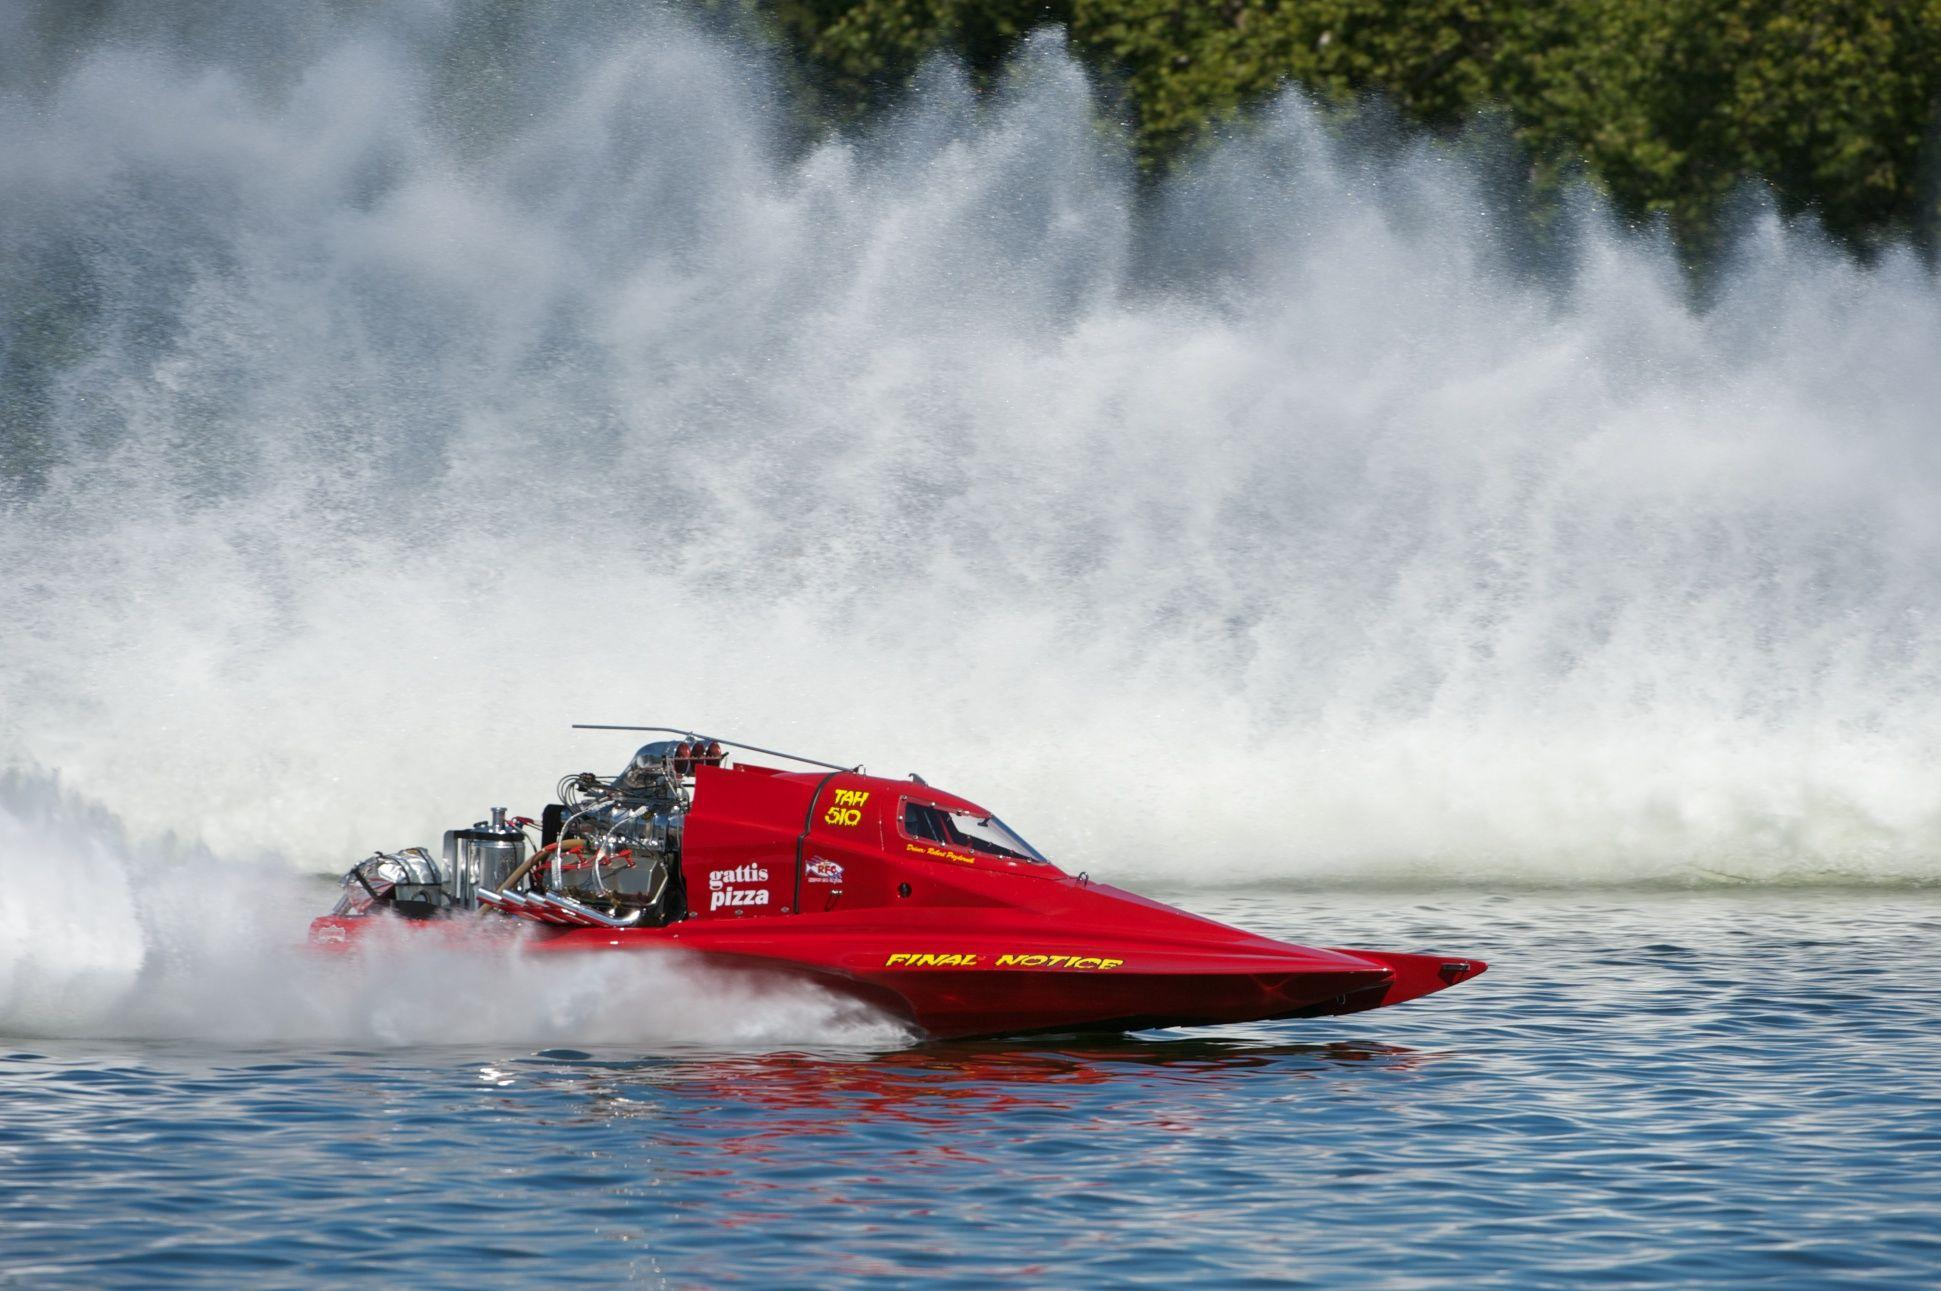 DRAG-BOAT race racing ship hot rod rods drag engine h wallpaper ...